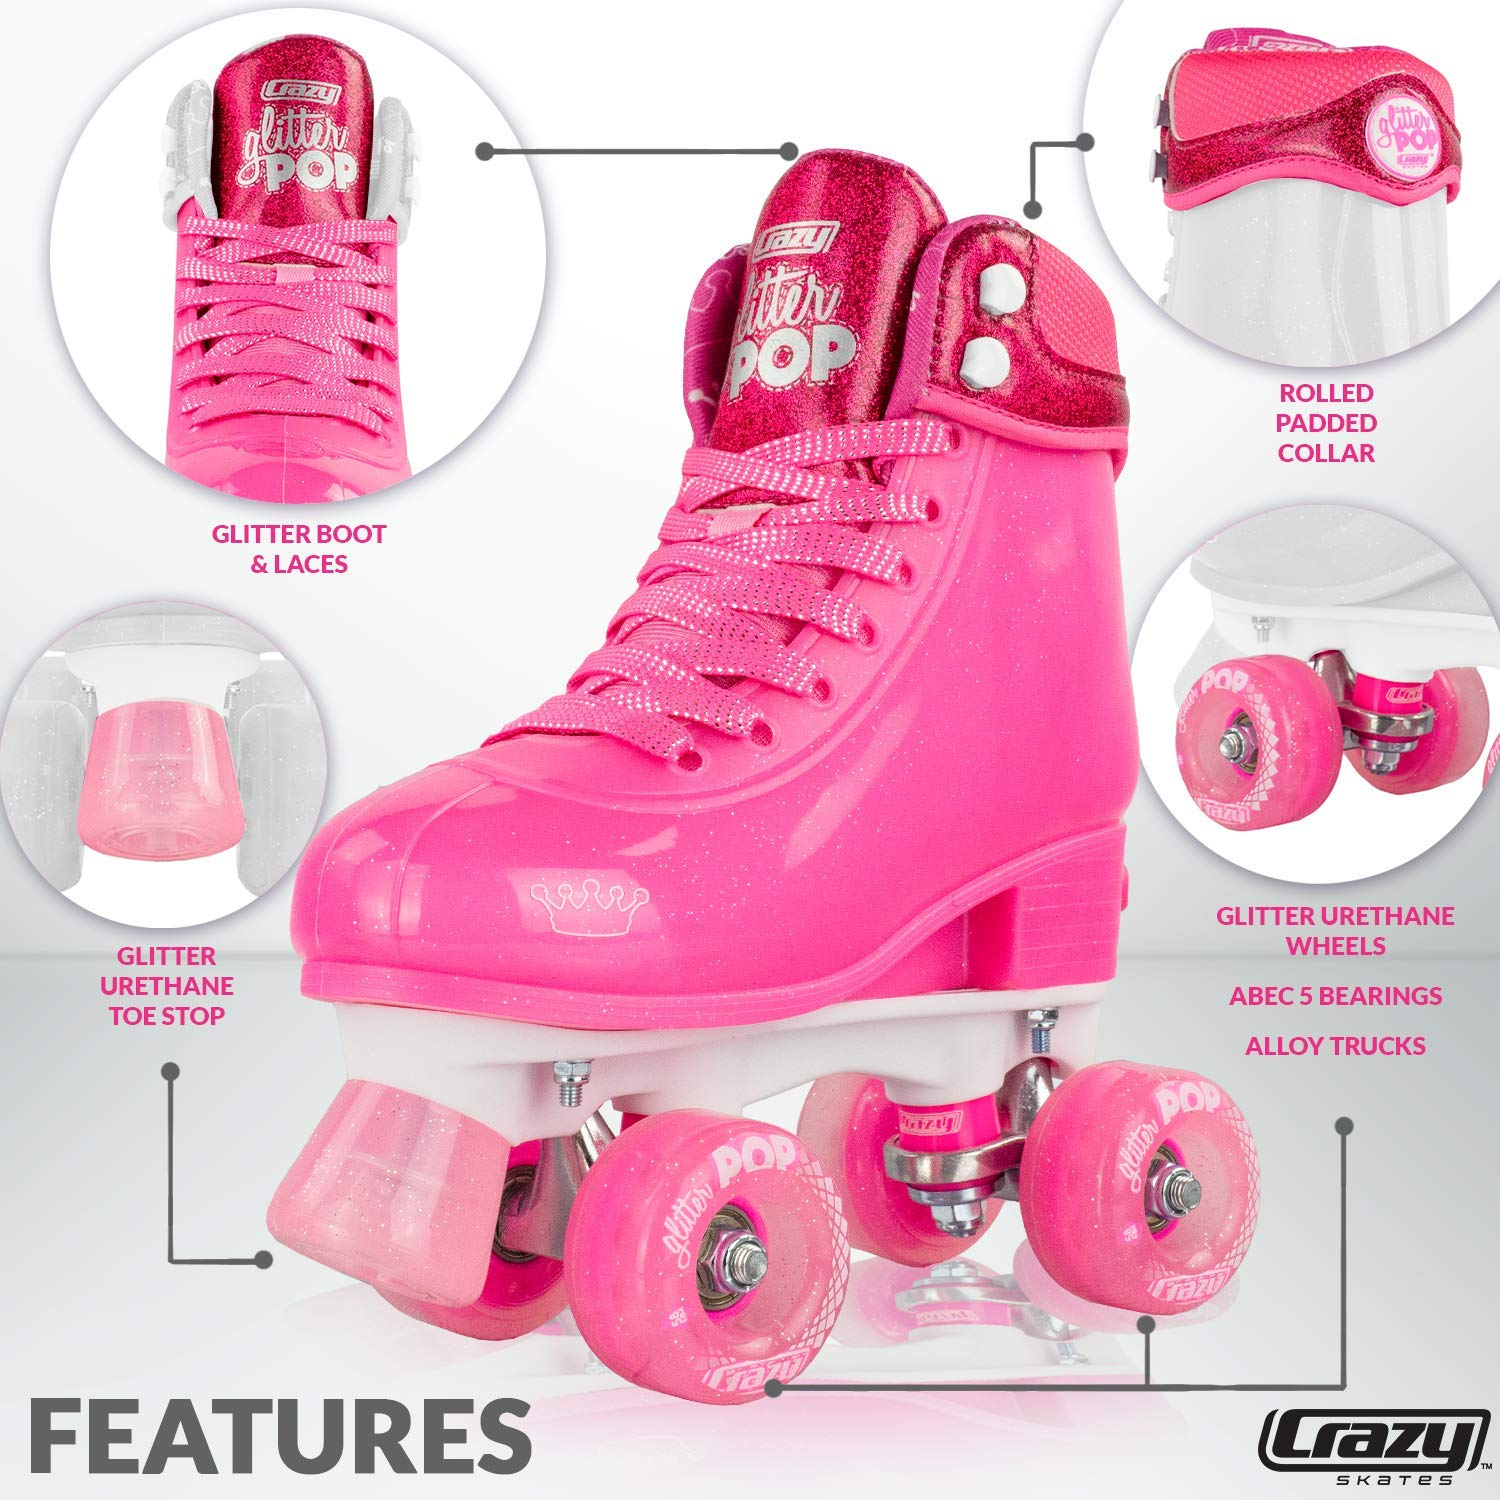 Amazon.com : Crazy Skates Glitter POP Adjustable Roller Skates for Girls and Boys | Size Adjustable Quad Skates That Fit 4 Shoe : Sports & Outdoors